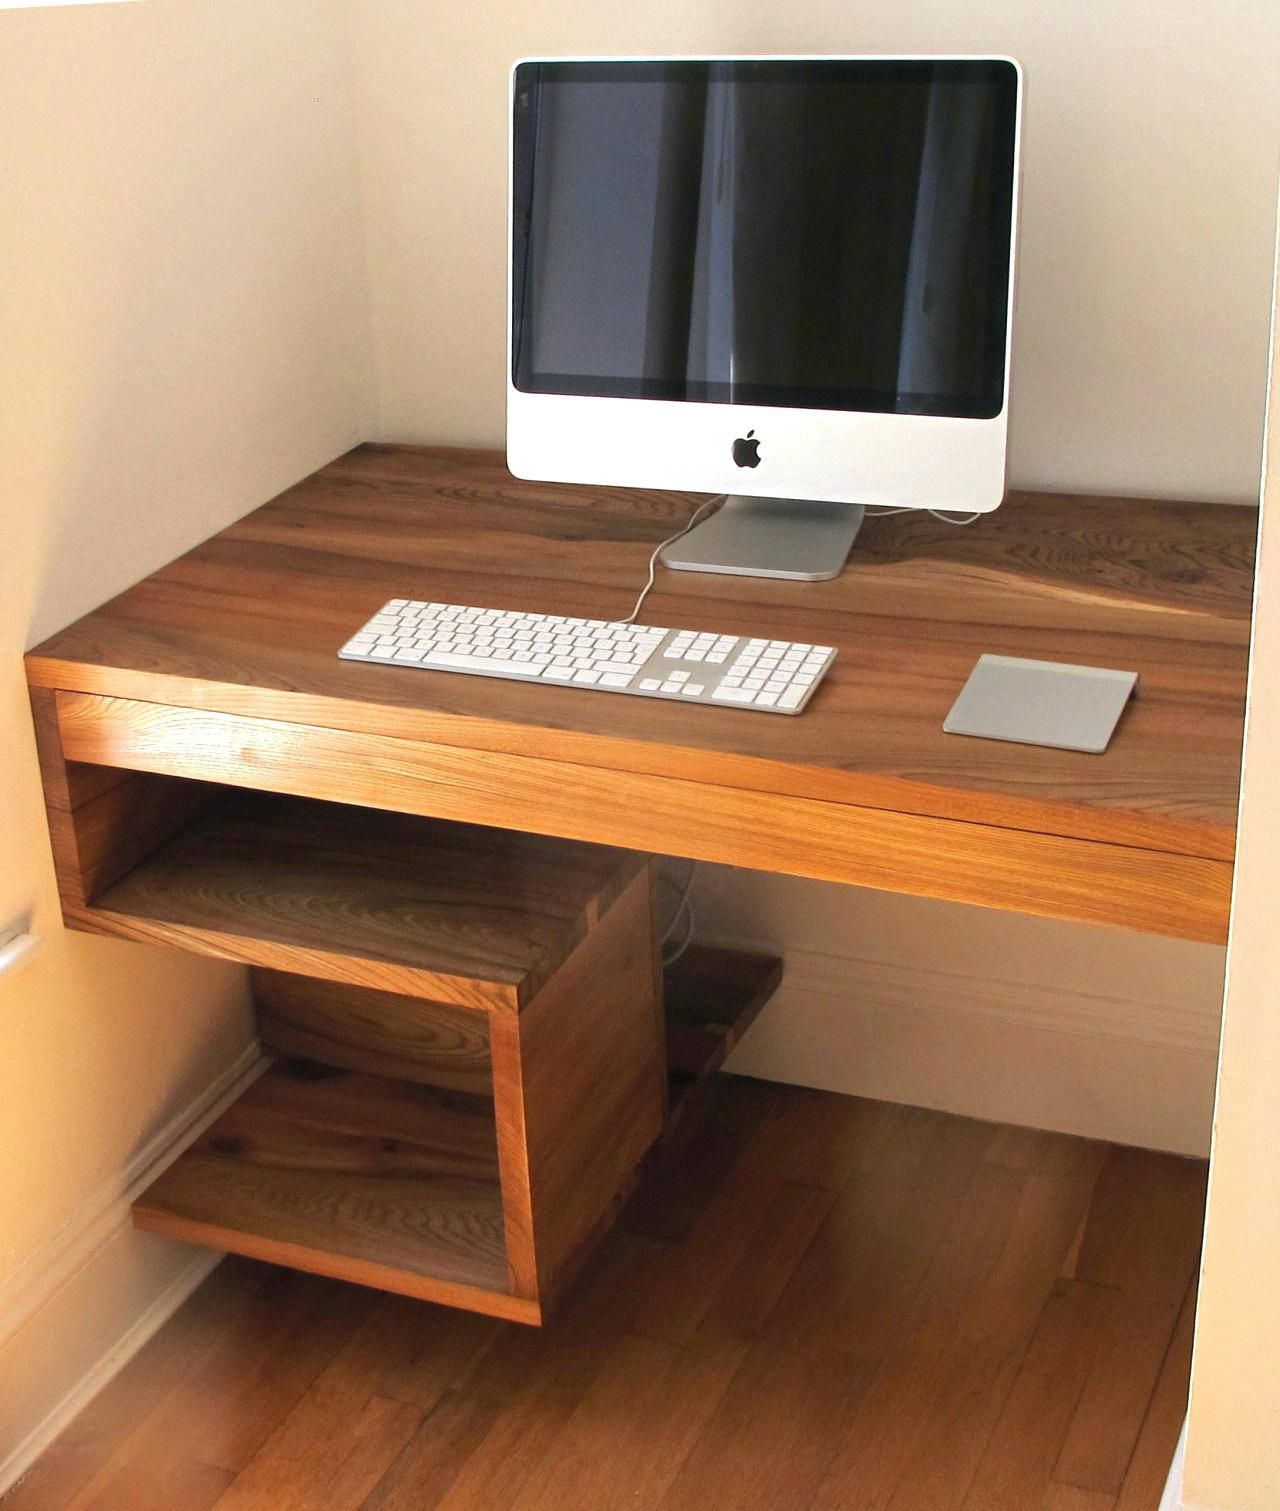 bespoke office desks. 30 Bespoke Office Desks - Rustic Modern Furniture Check More At Http://michael I